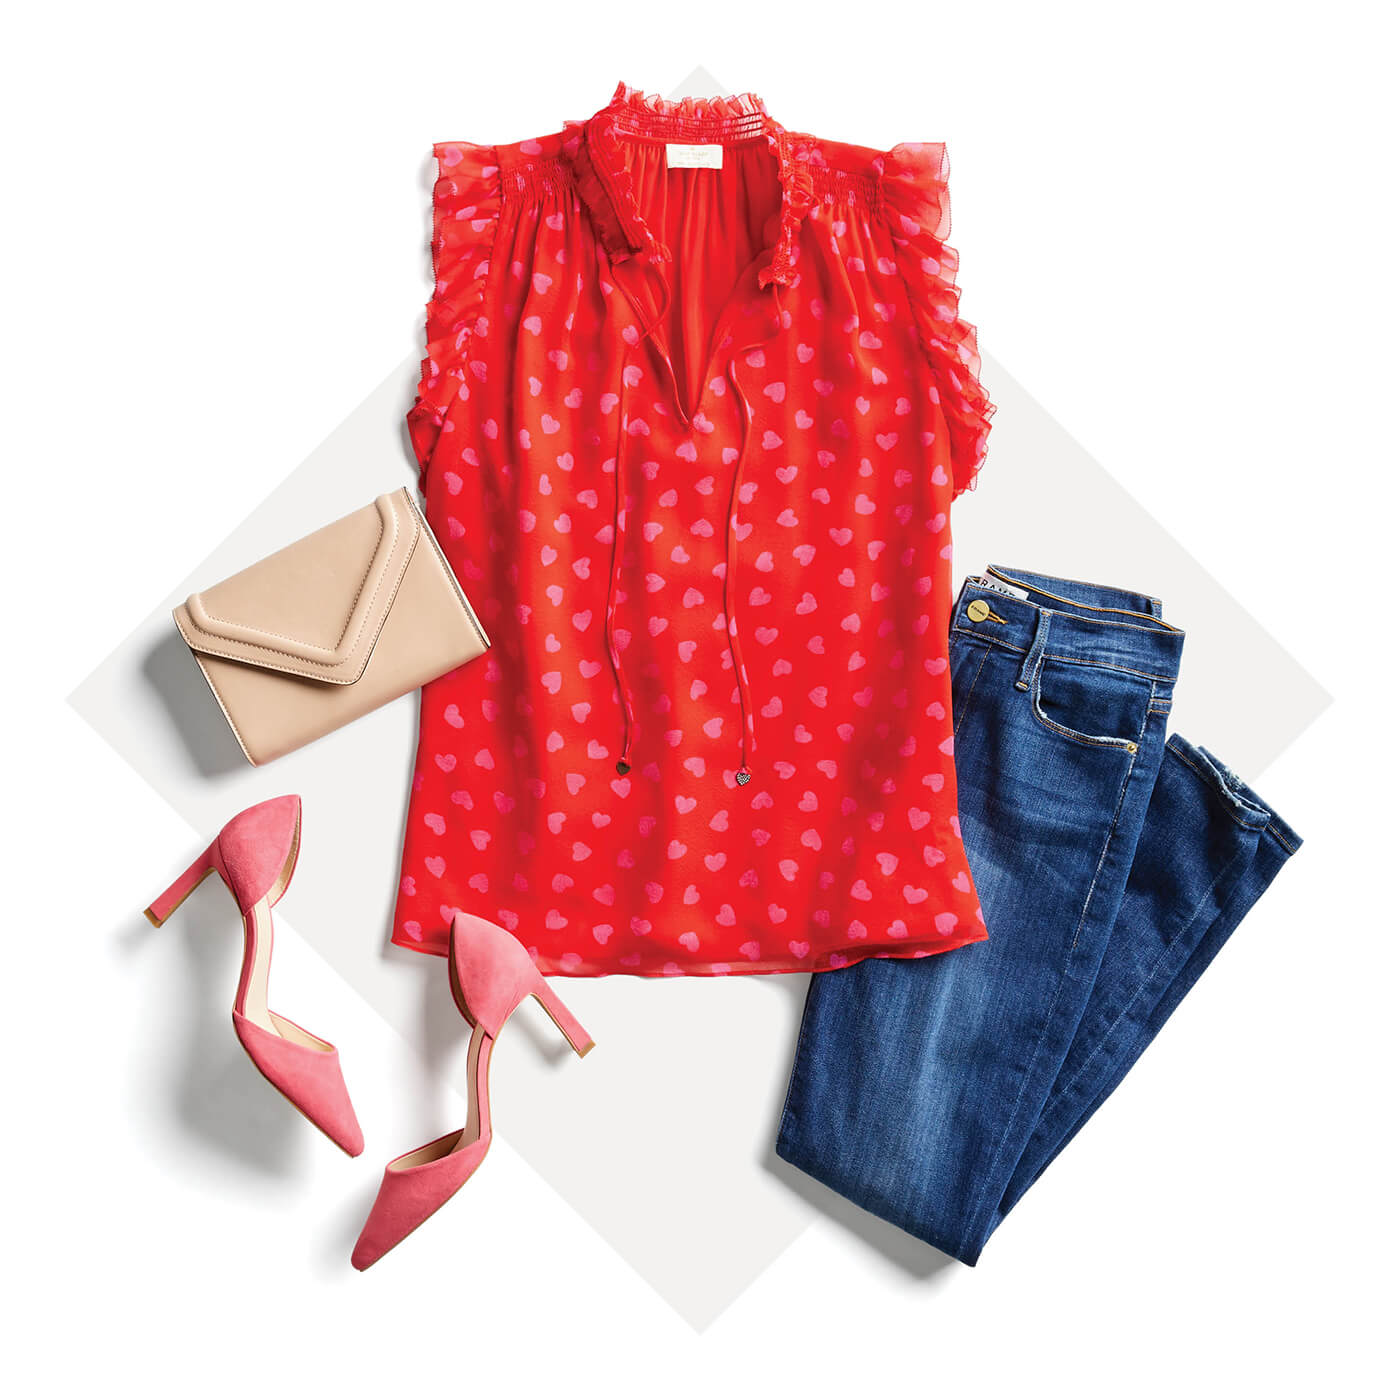 dc2d45757e05 What to Wear for Valentine's Day If You're Going Out or Staying In | Stitch  Fix Blog | Bloglovin'